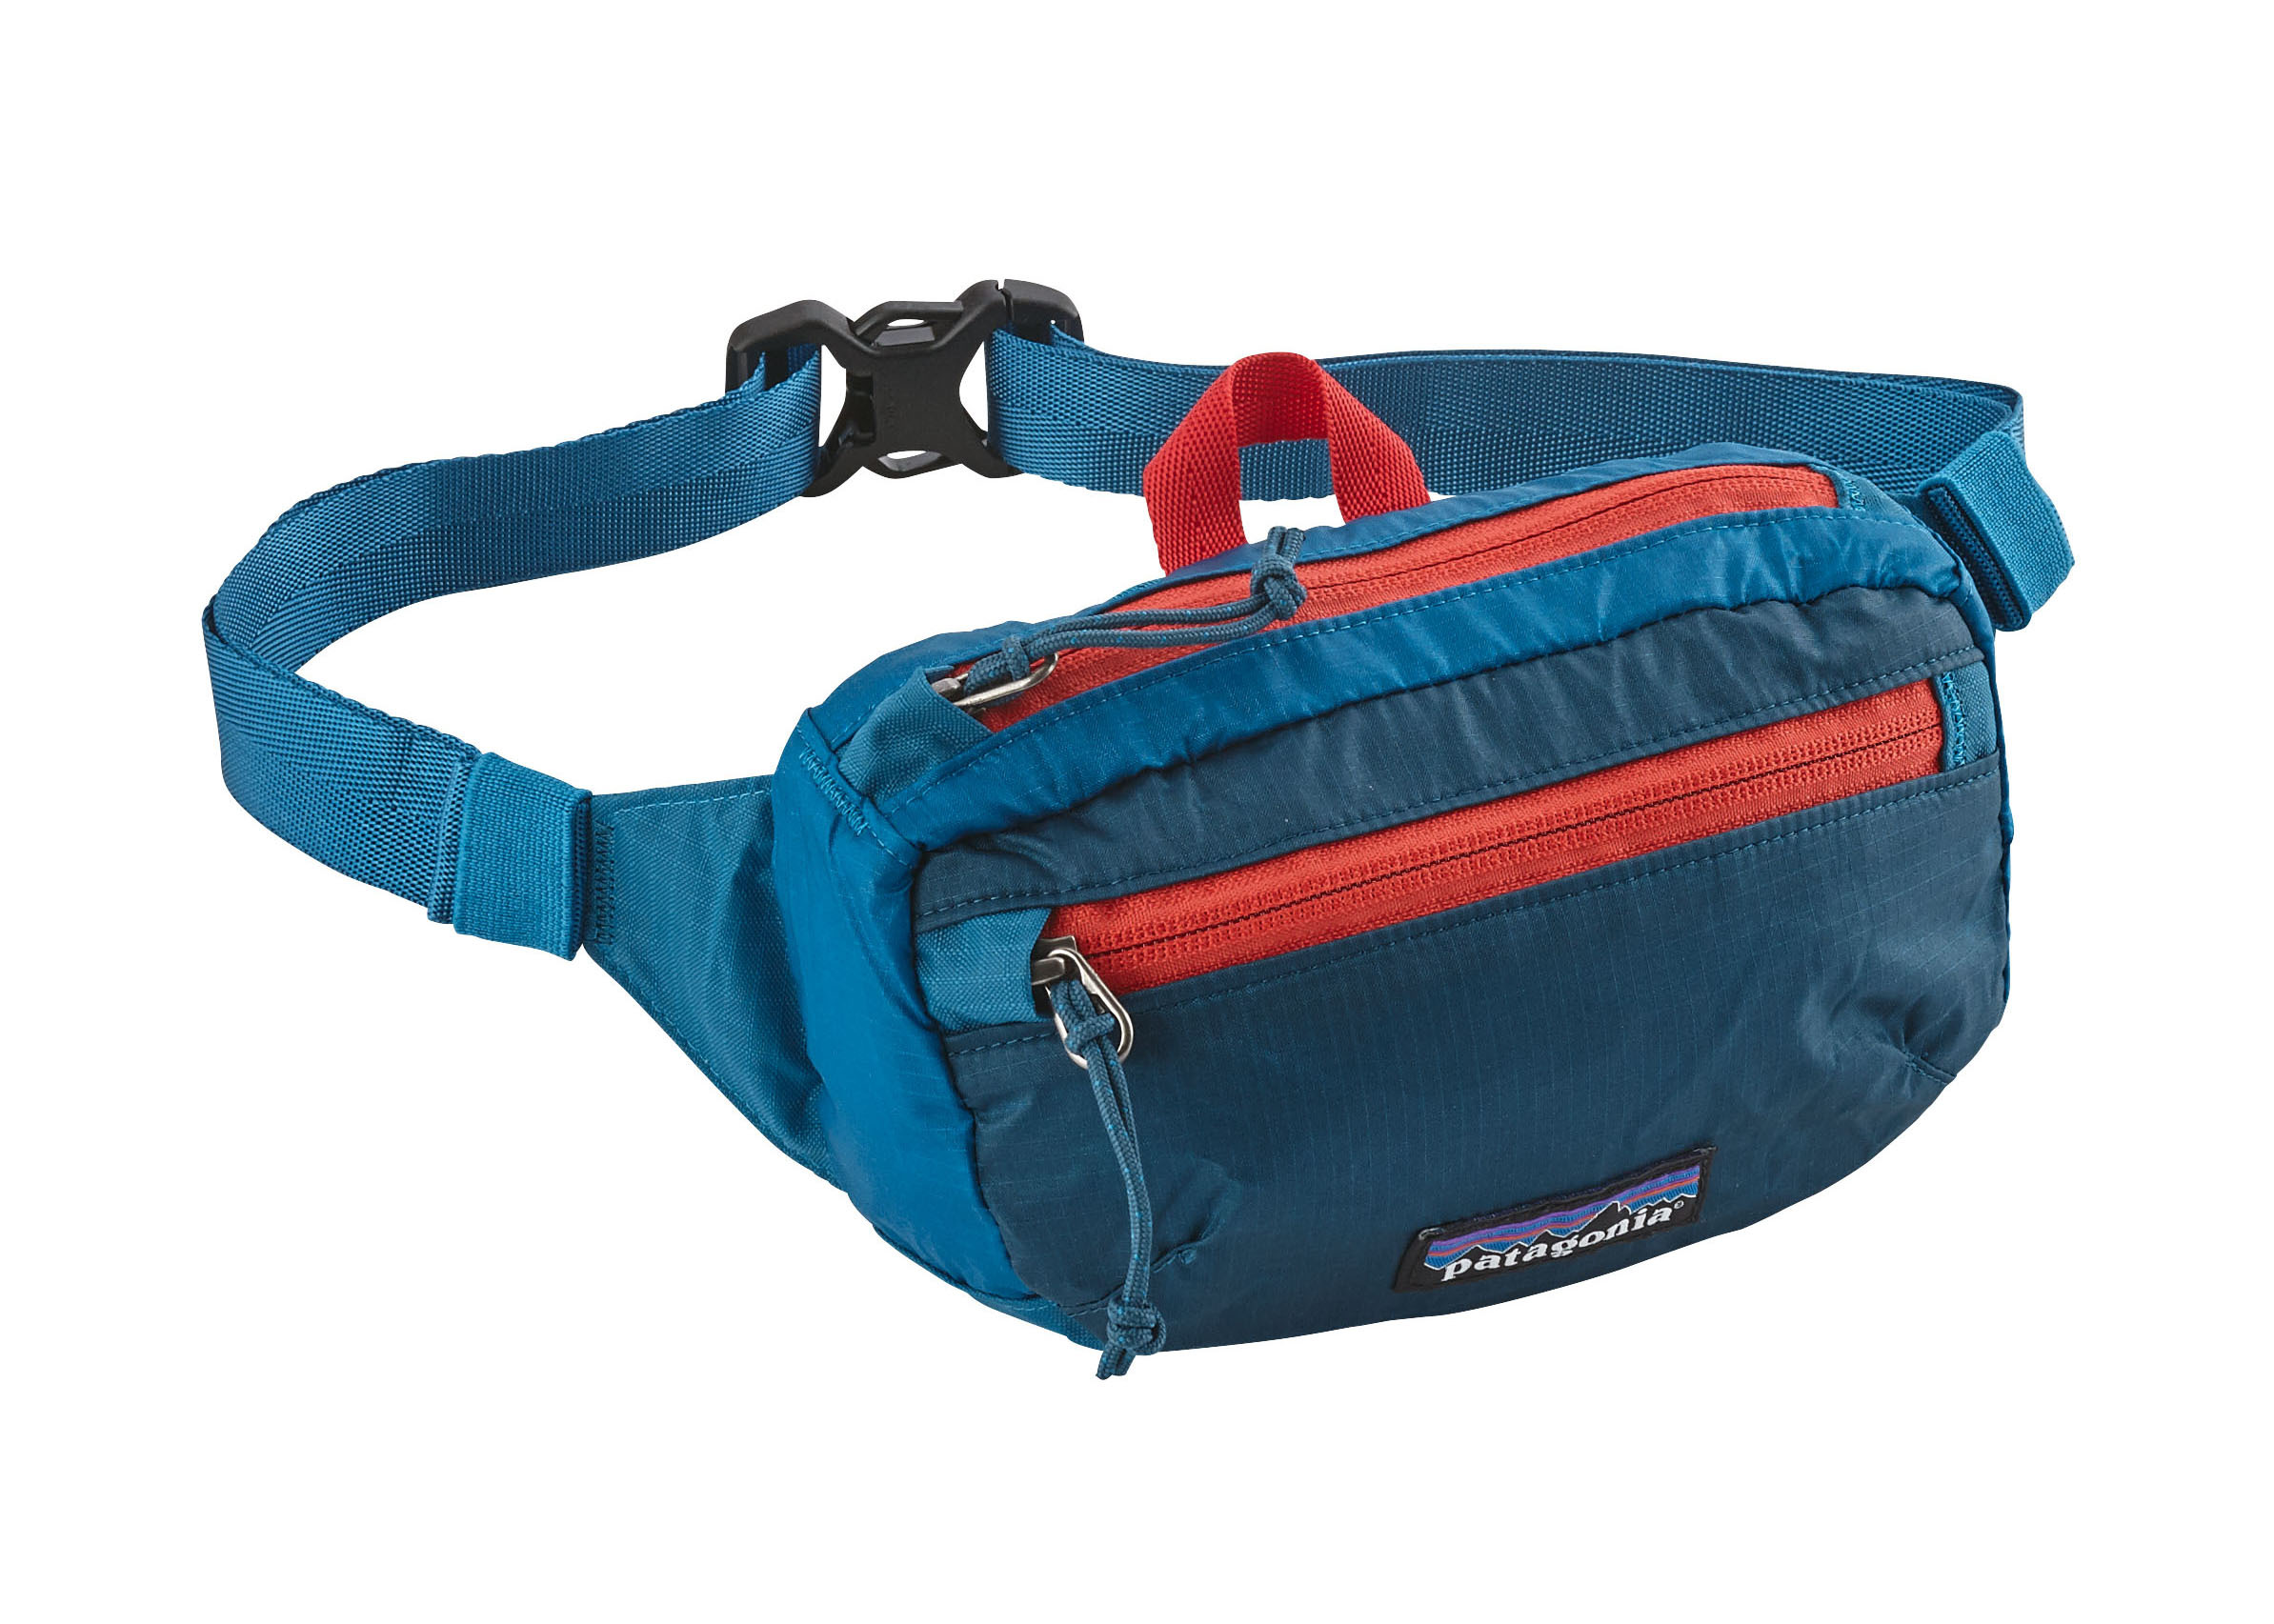 Patagonia-hip-bag-blue.jpg?mtime=20181130081858#asset:103913